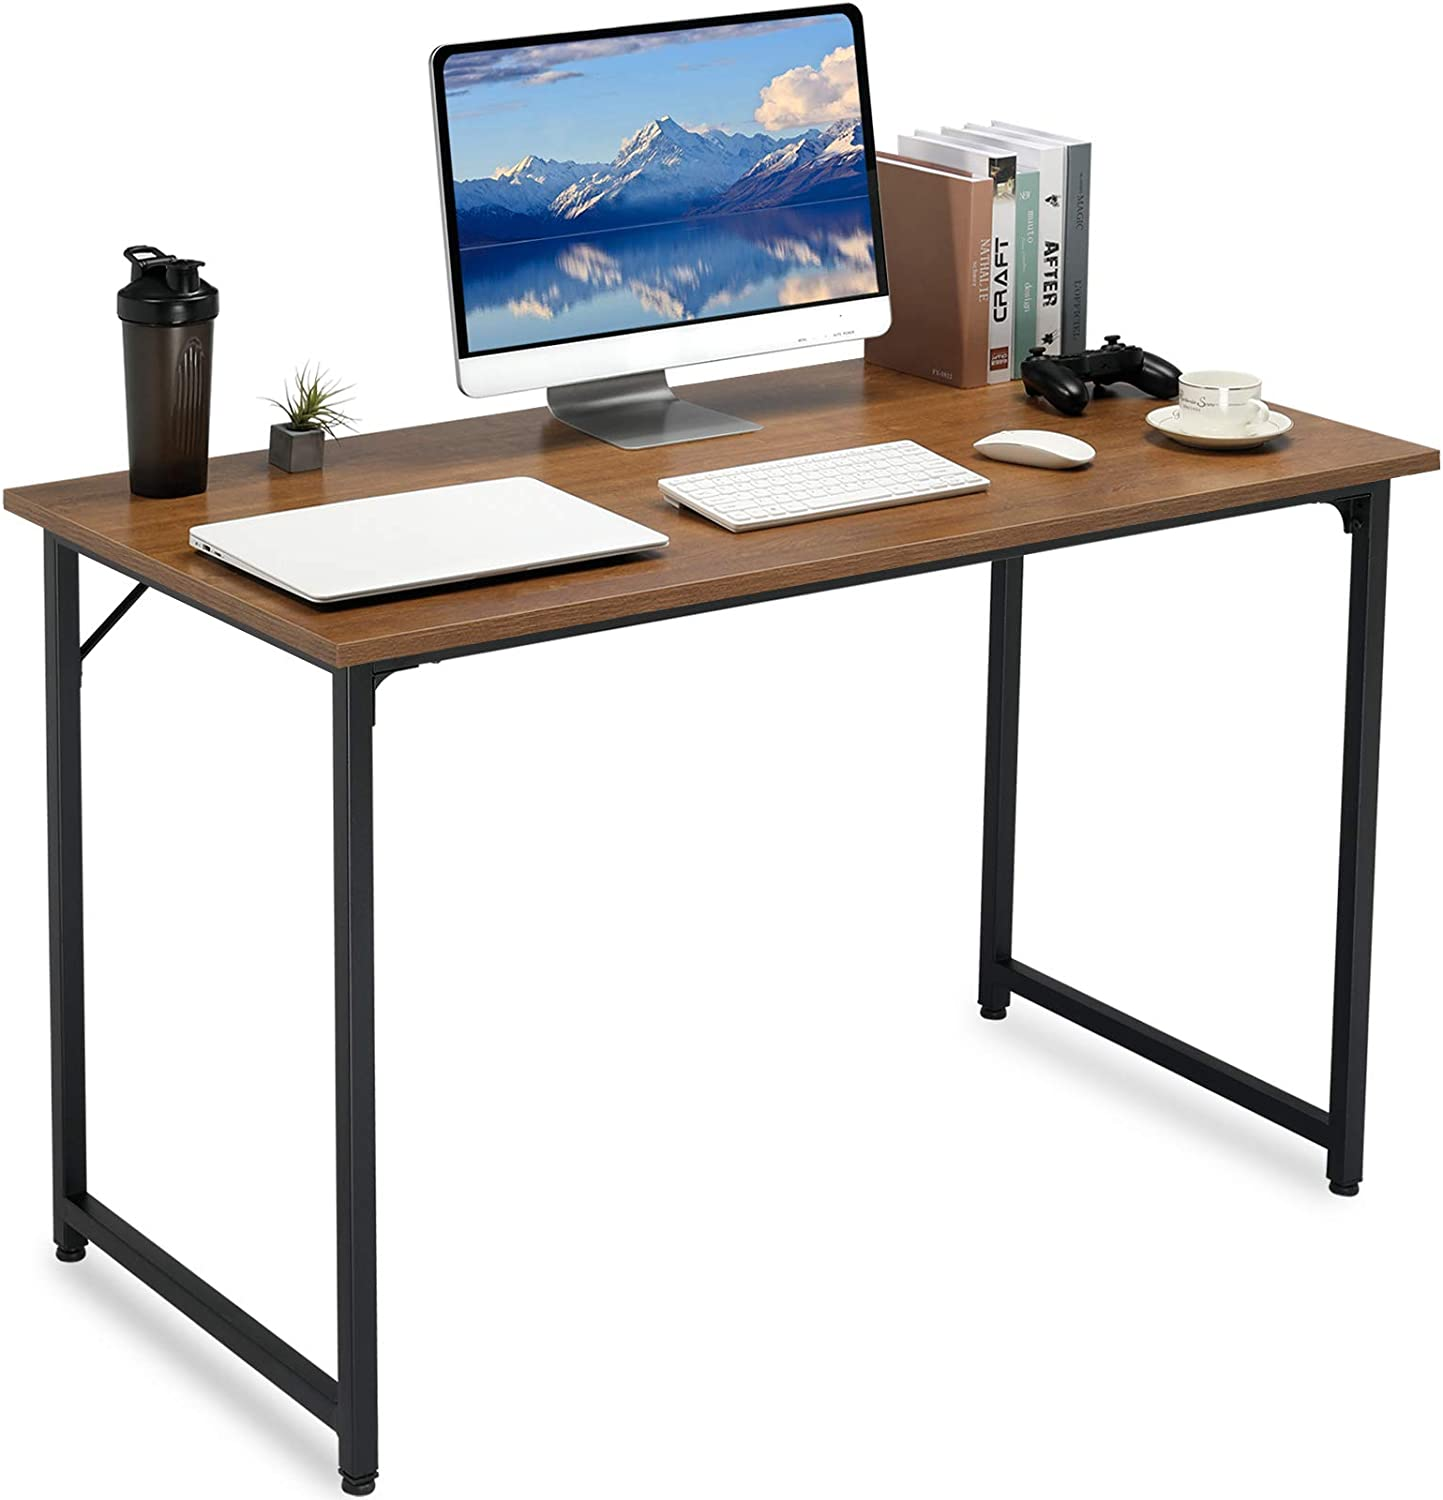 ComHoma Computer Desk 47 inch Home Office Writing Desk for Small Space Modern Student Work Laptop PC Notebook Study Table, Brown